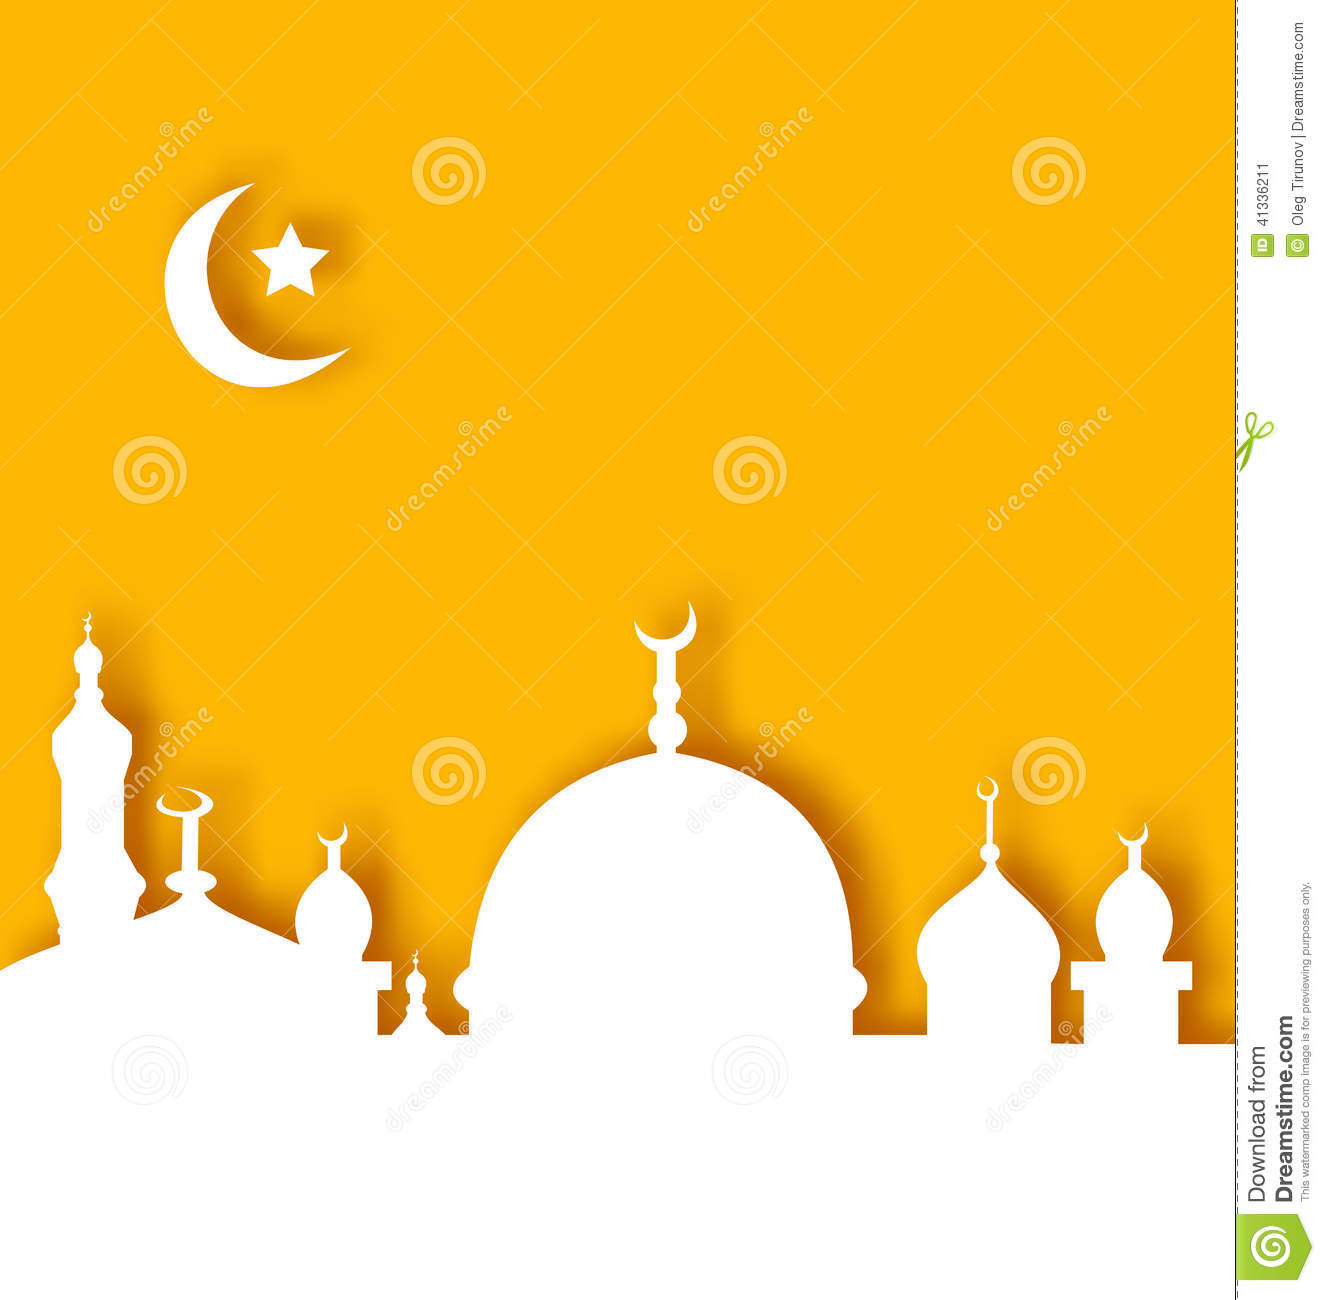 Islamic Architecture Background, Ramadan Kareem Stock Vector - Image ...